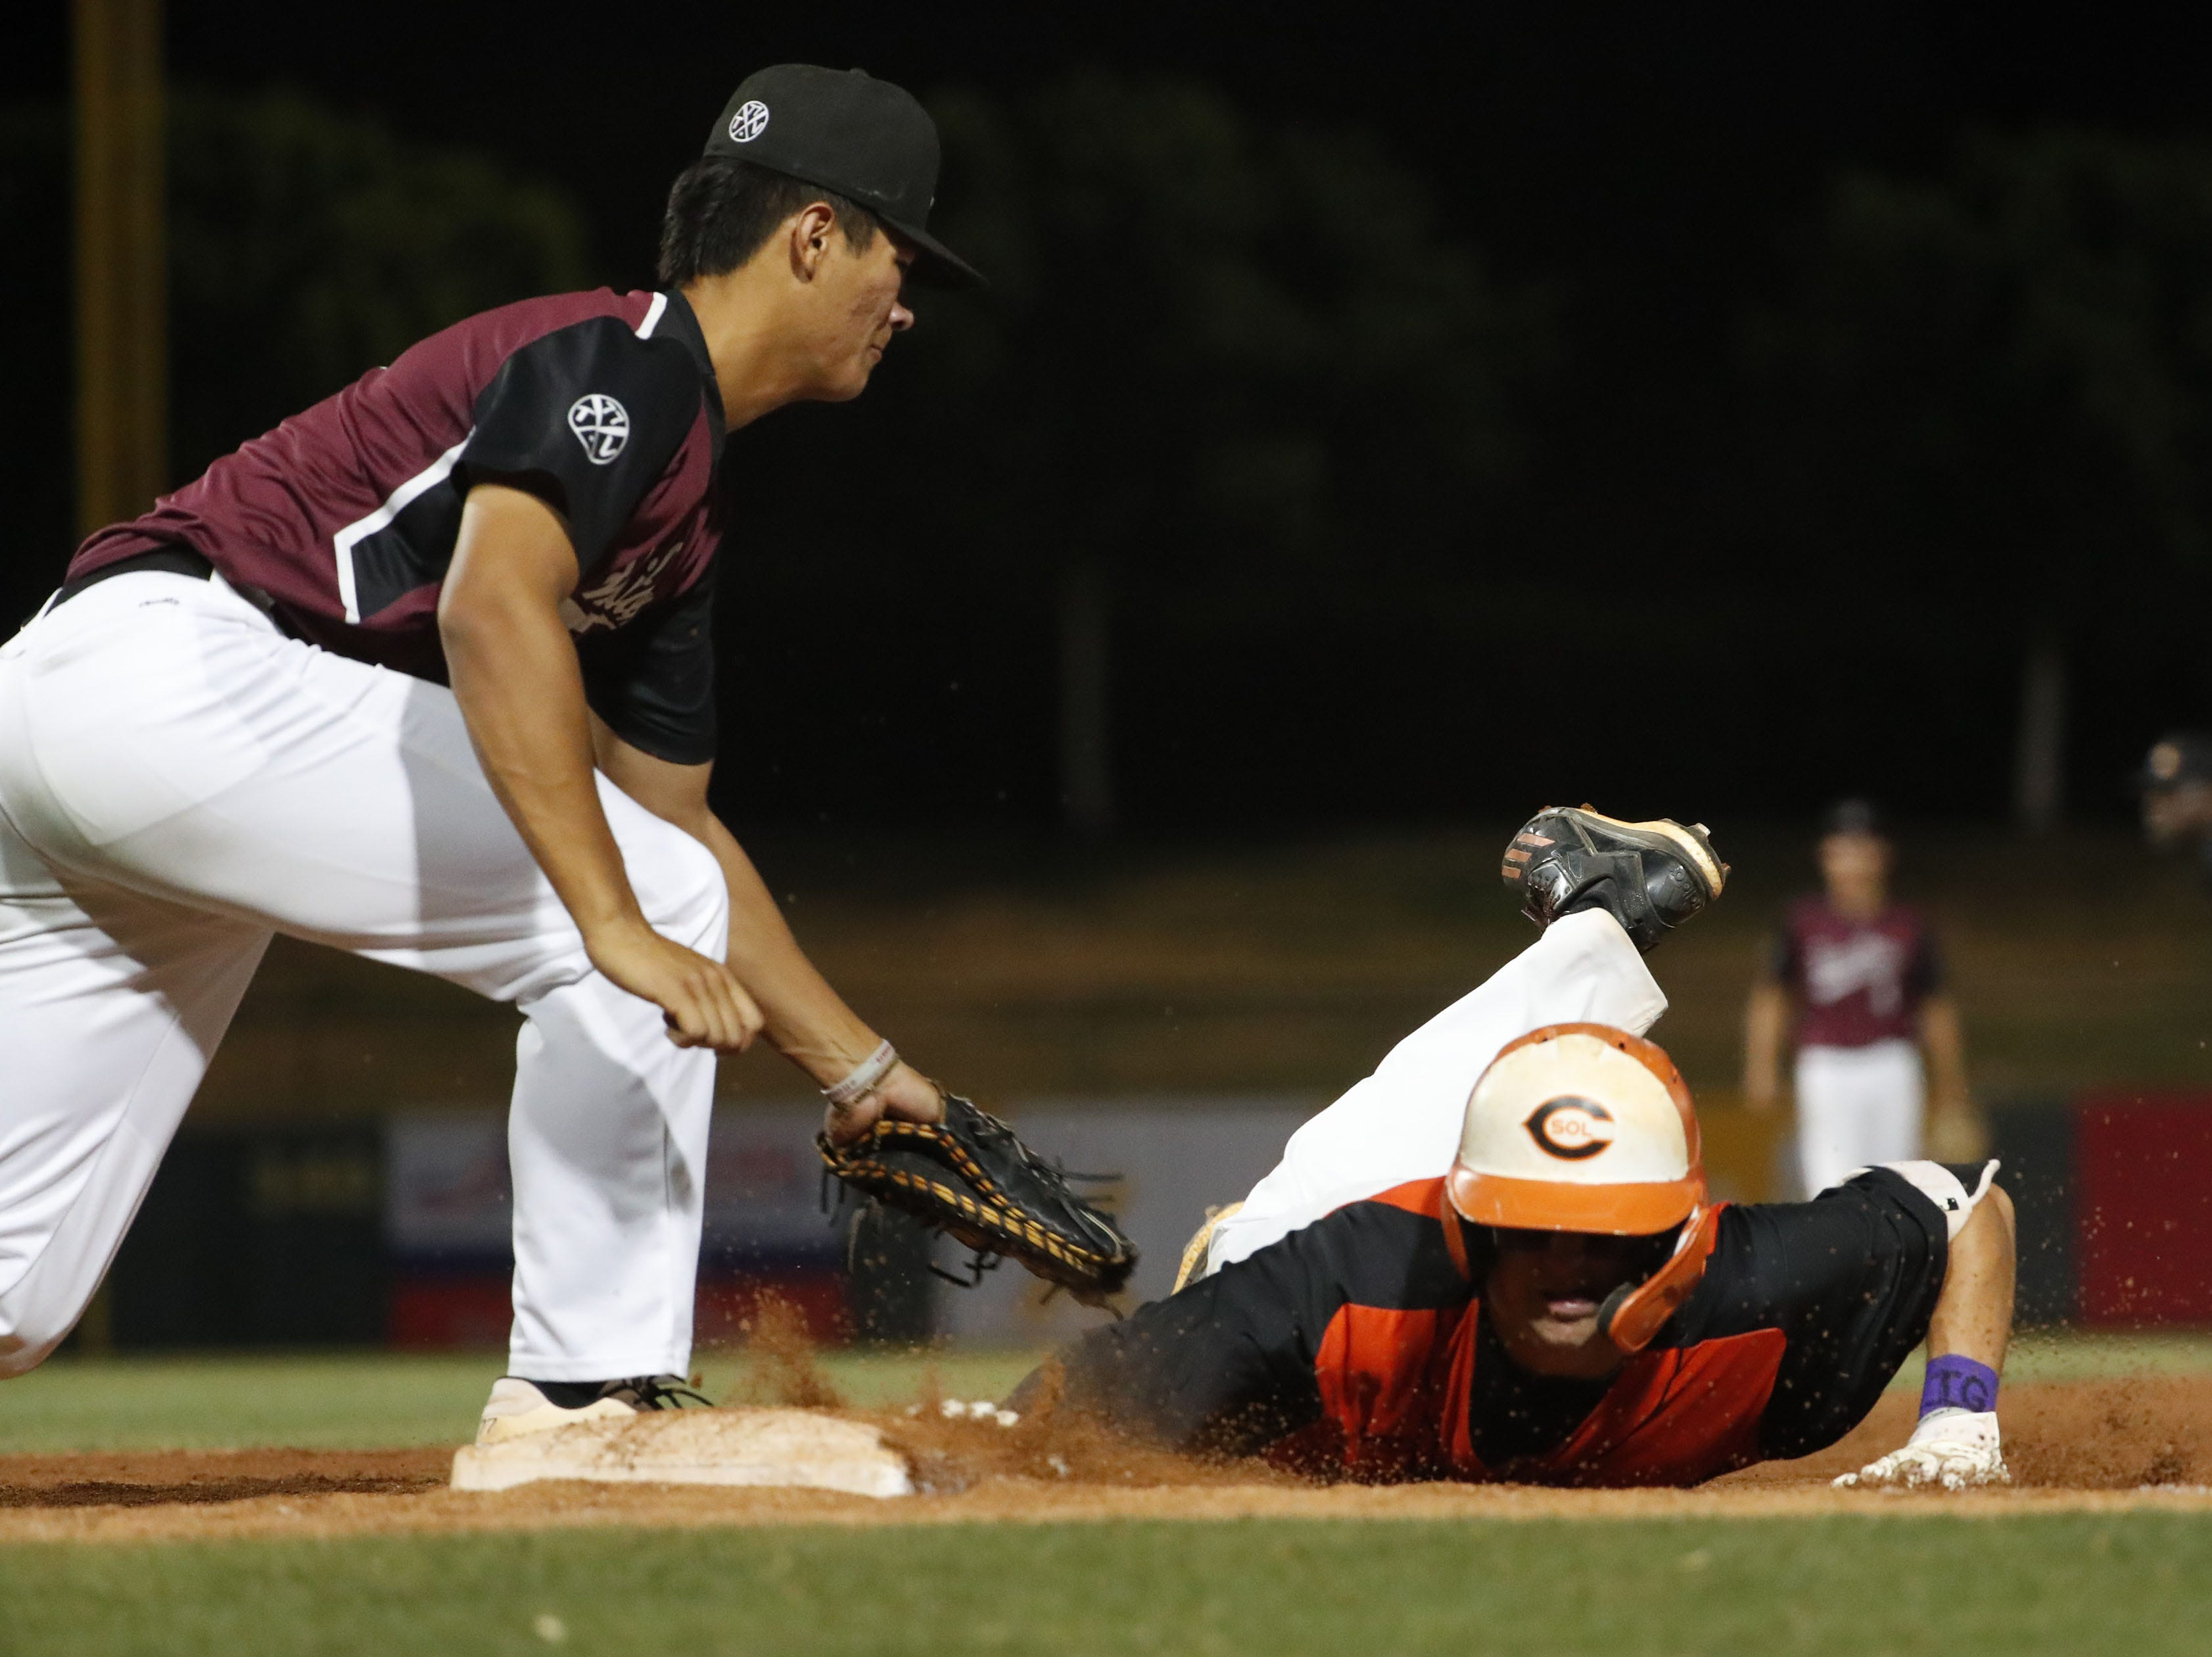 Corona del Sol shortstop Hunter Haas (7) dives back into to first ahead of the tag by Hamilton first baseman Tyler Wilson (8) during the 6A State Baseball Championship in Tempe, Ariz. May 14, 2019.